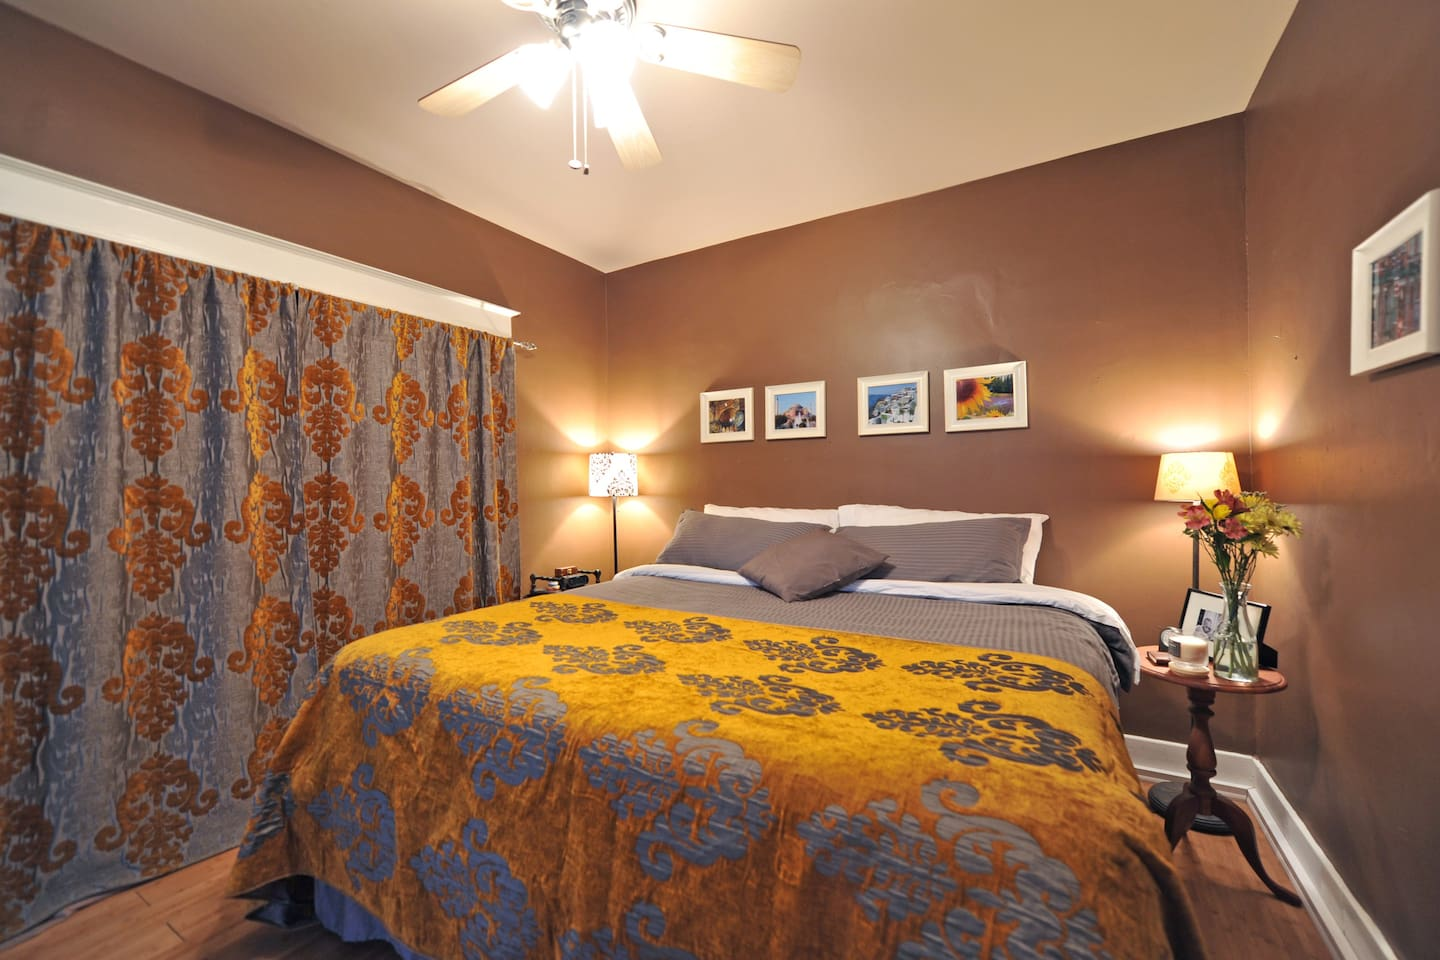 Hiding behind the custom made drapes are light blocking curtains so you'll have a nice dark retreat for sleeping.